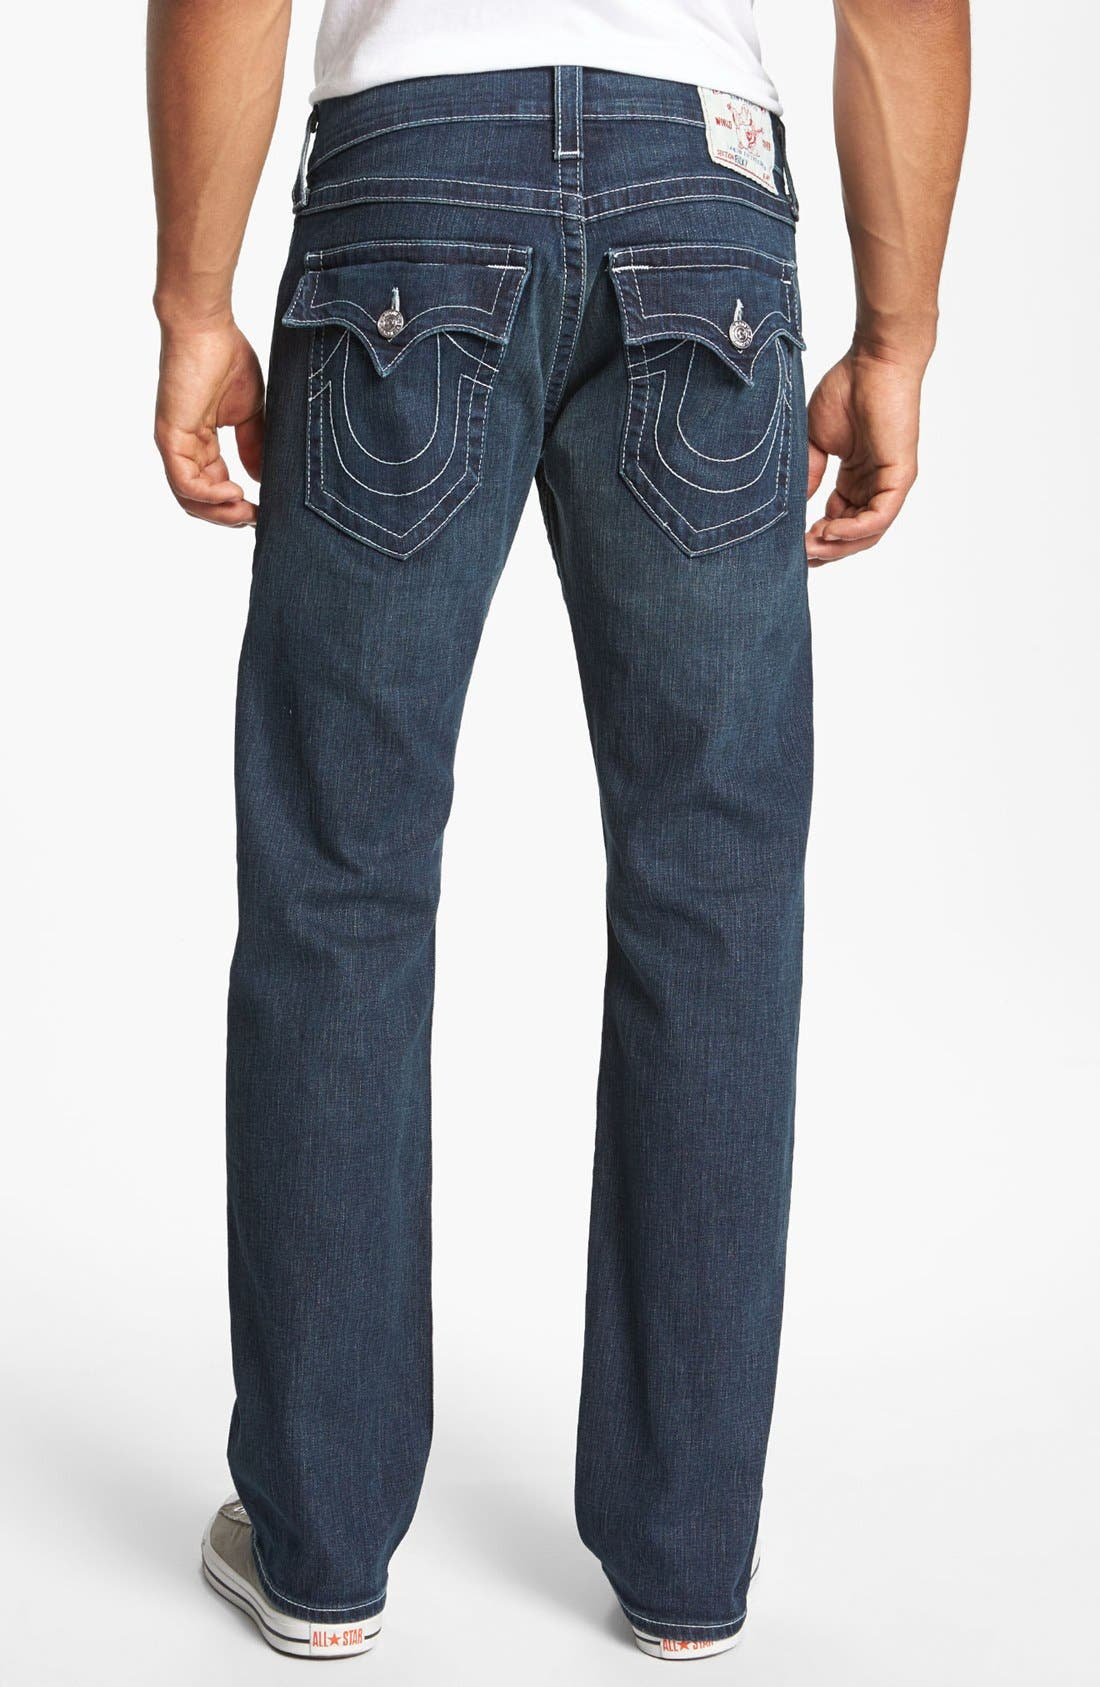 Alternate Image 1 Selected - True Religion Brand Jeans 'Ricky' Stretch Relaxed Fit Jeans (Monte)